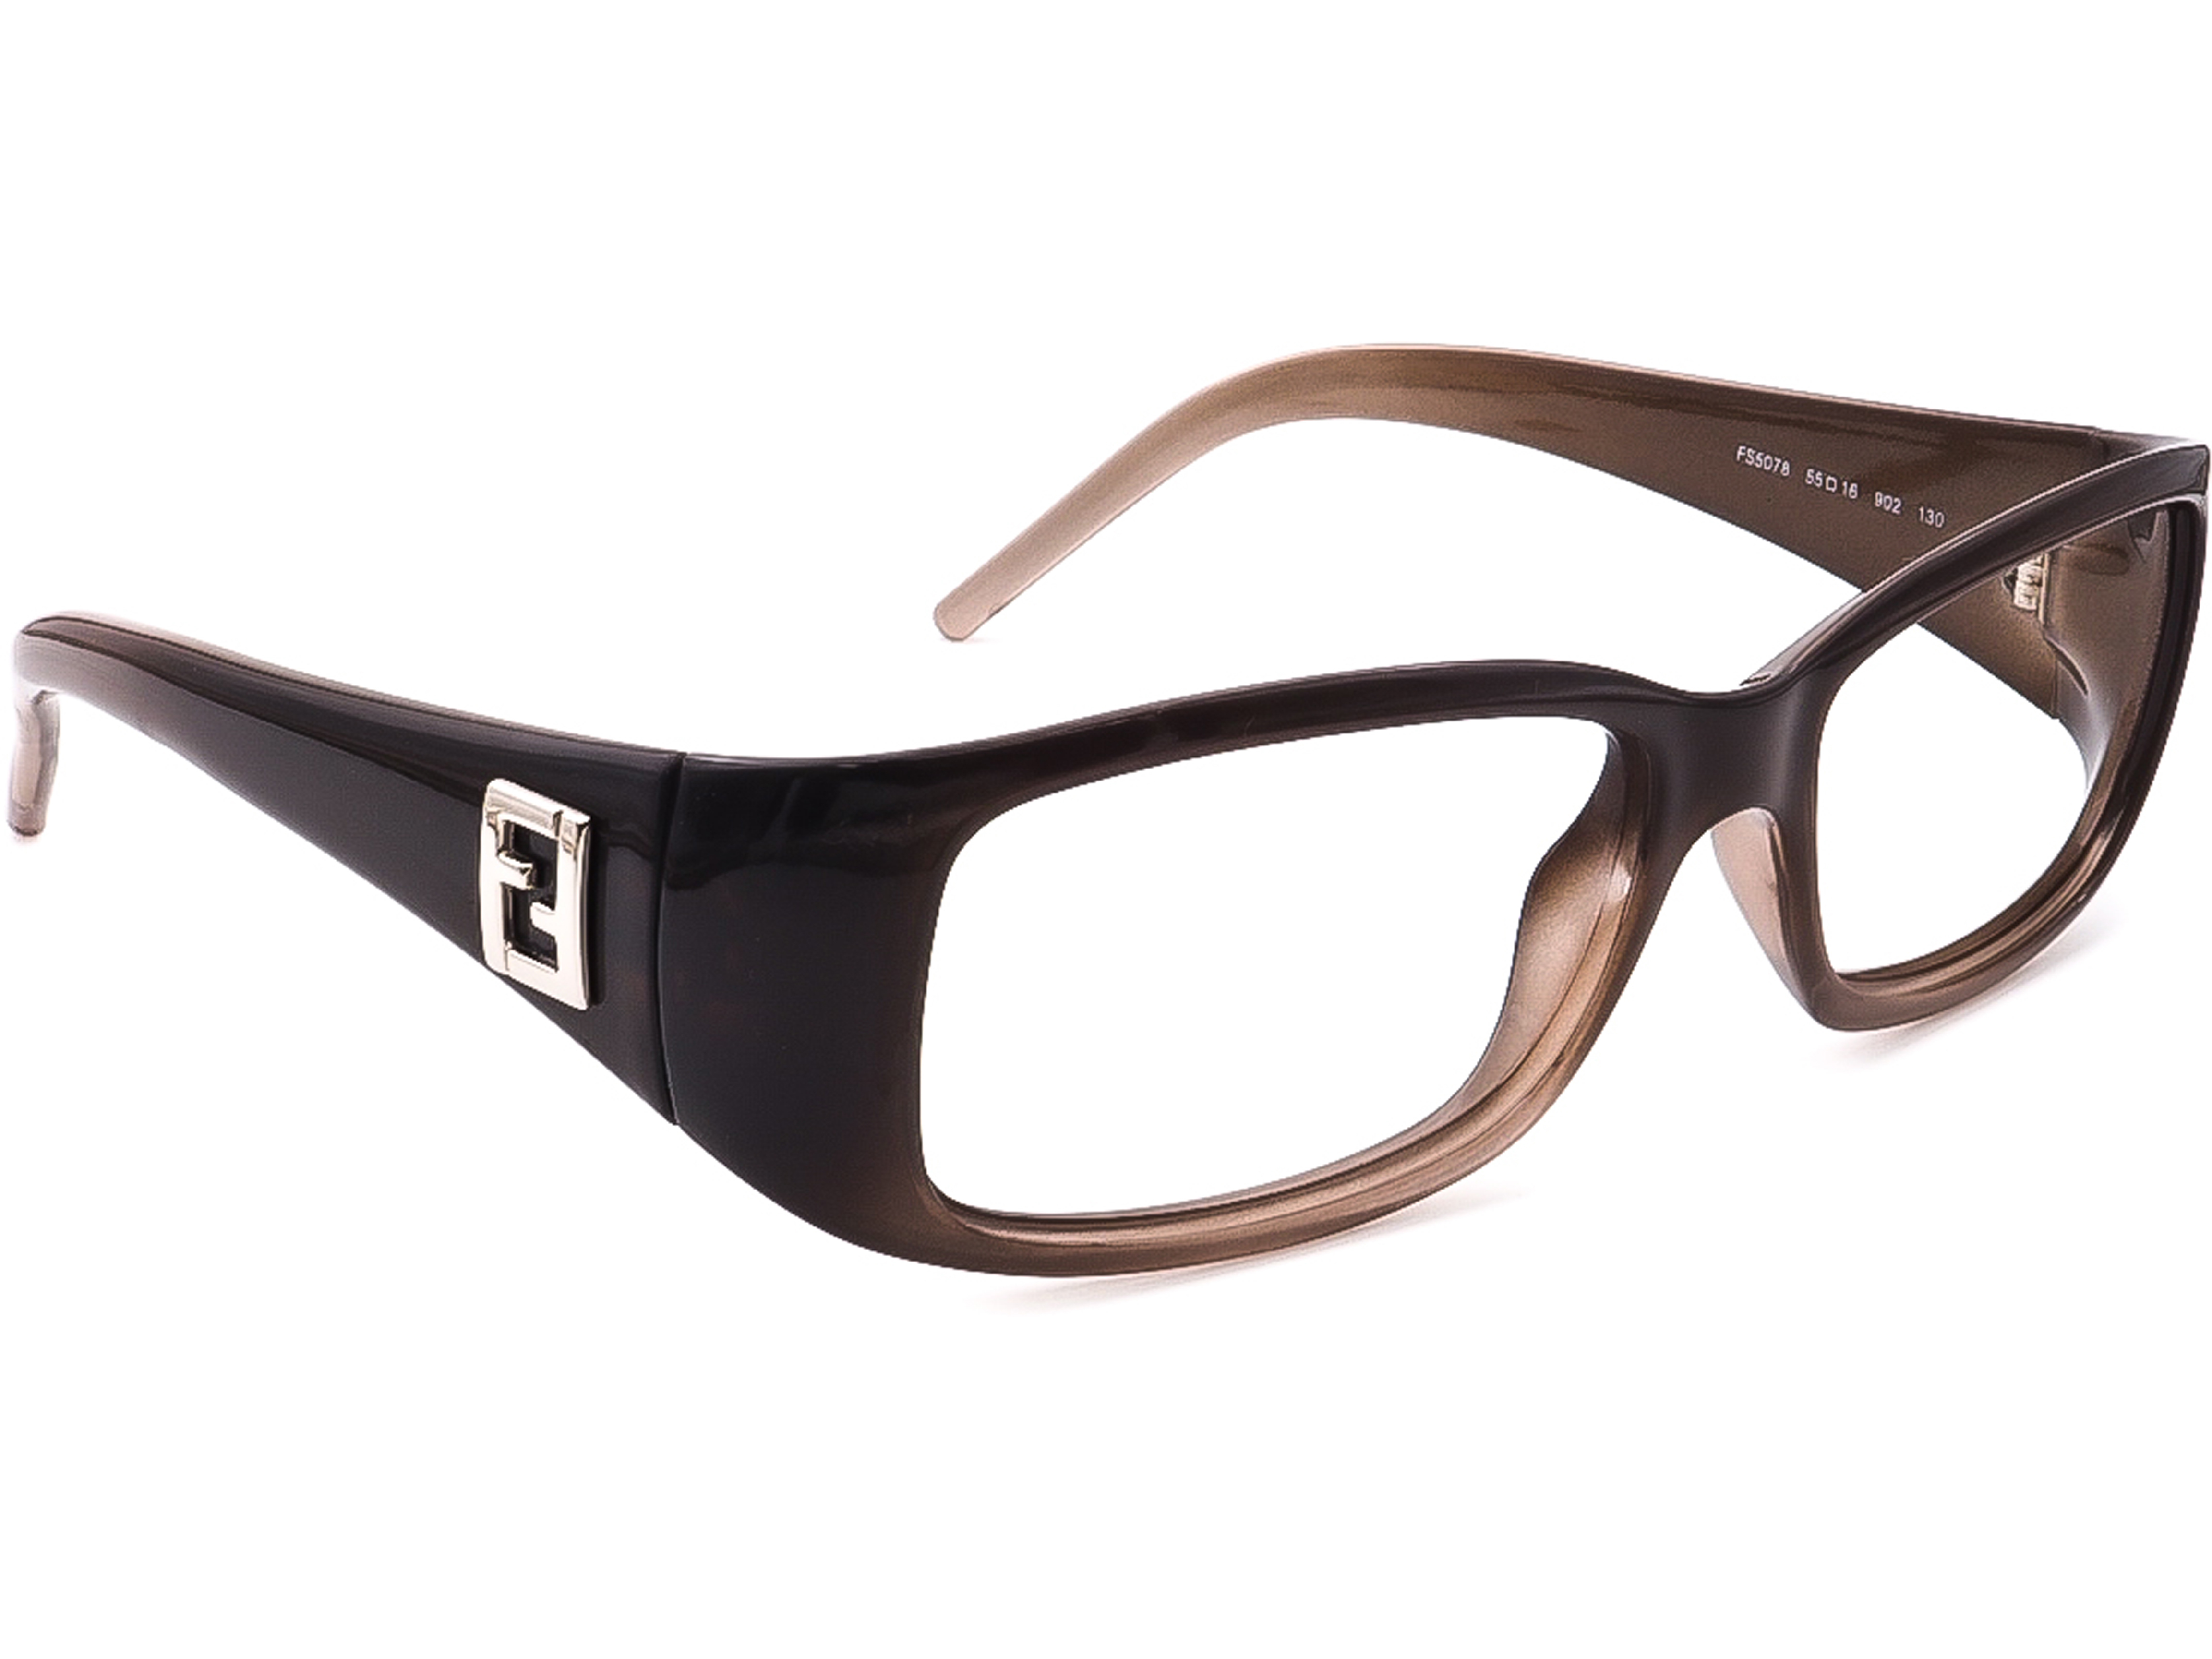 Fendi FS5078 902 Sunglasses Frame Only